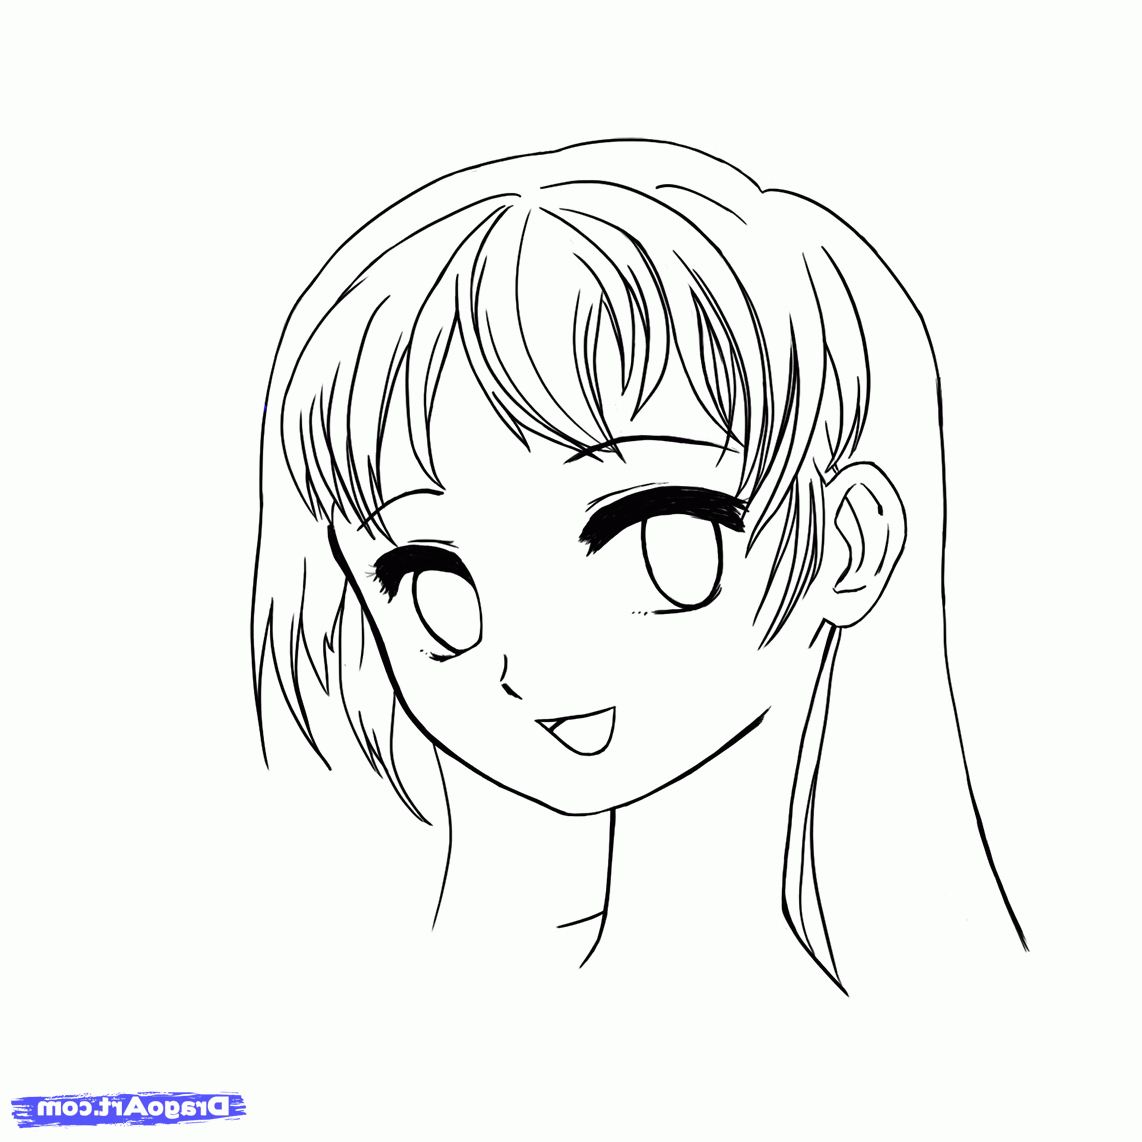 1142x1142 Easy Anime Face Sketches Easy To Draw Anime Faces How To Draw